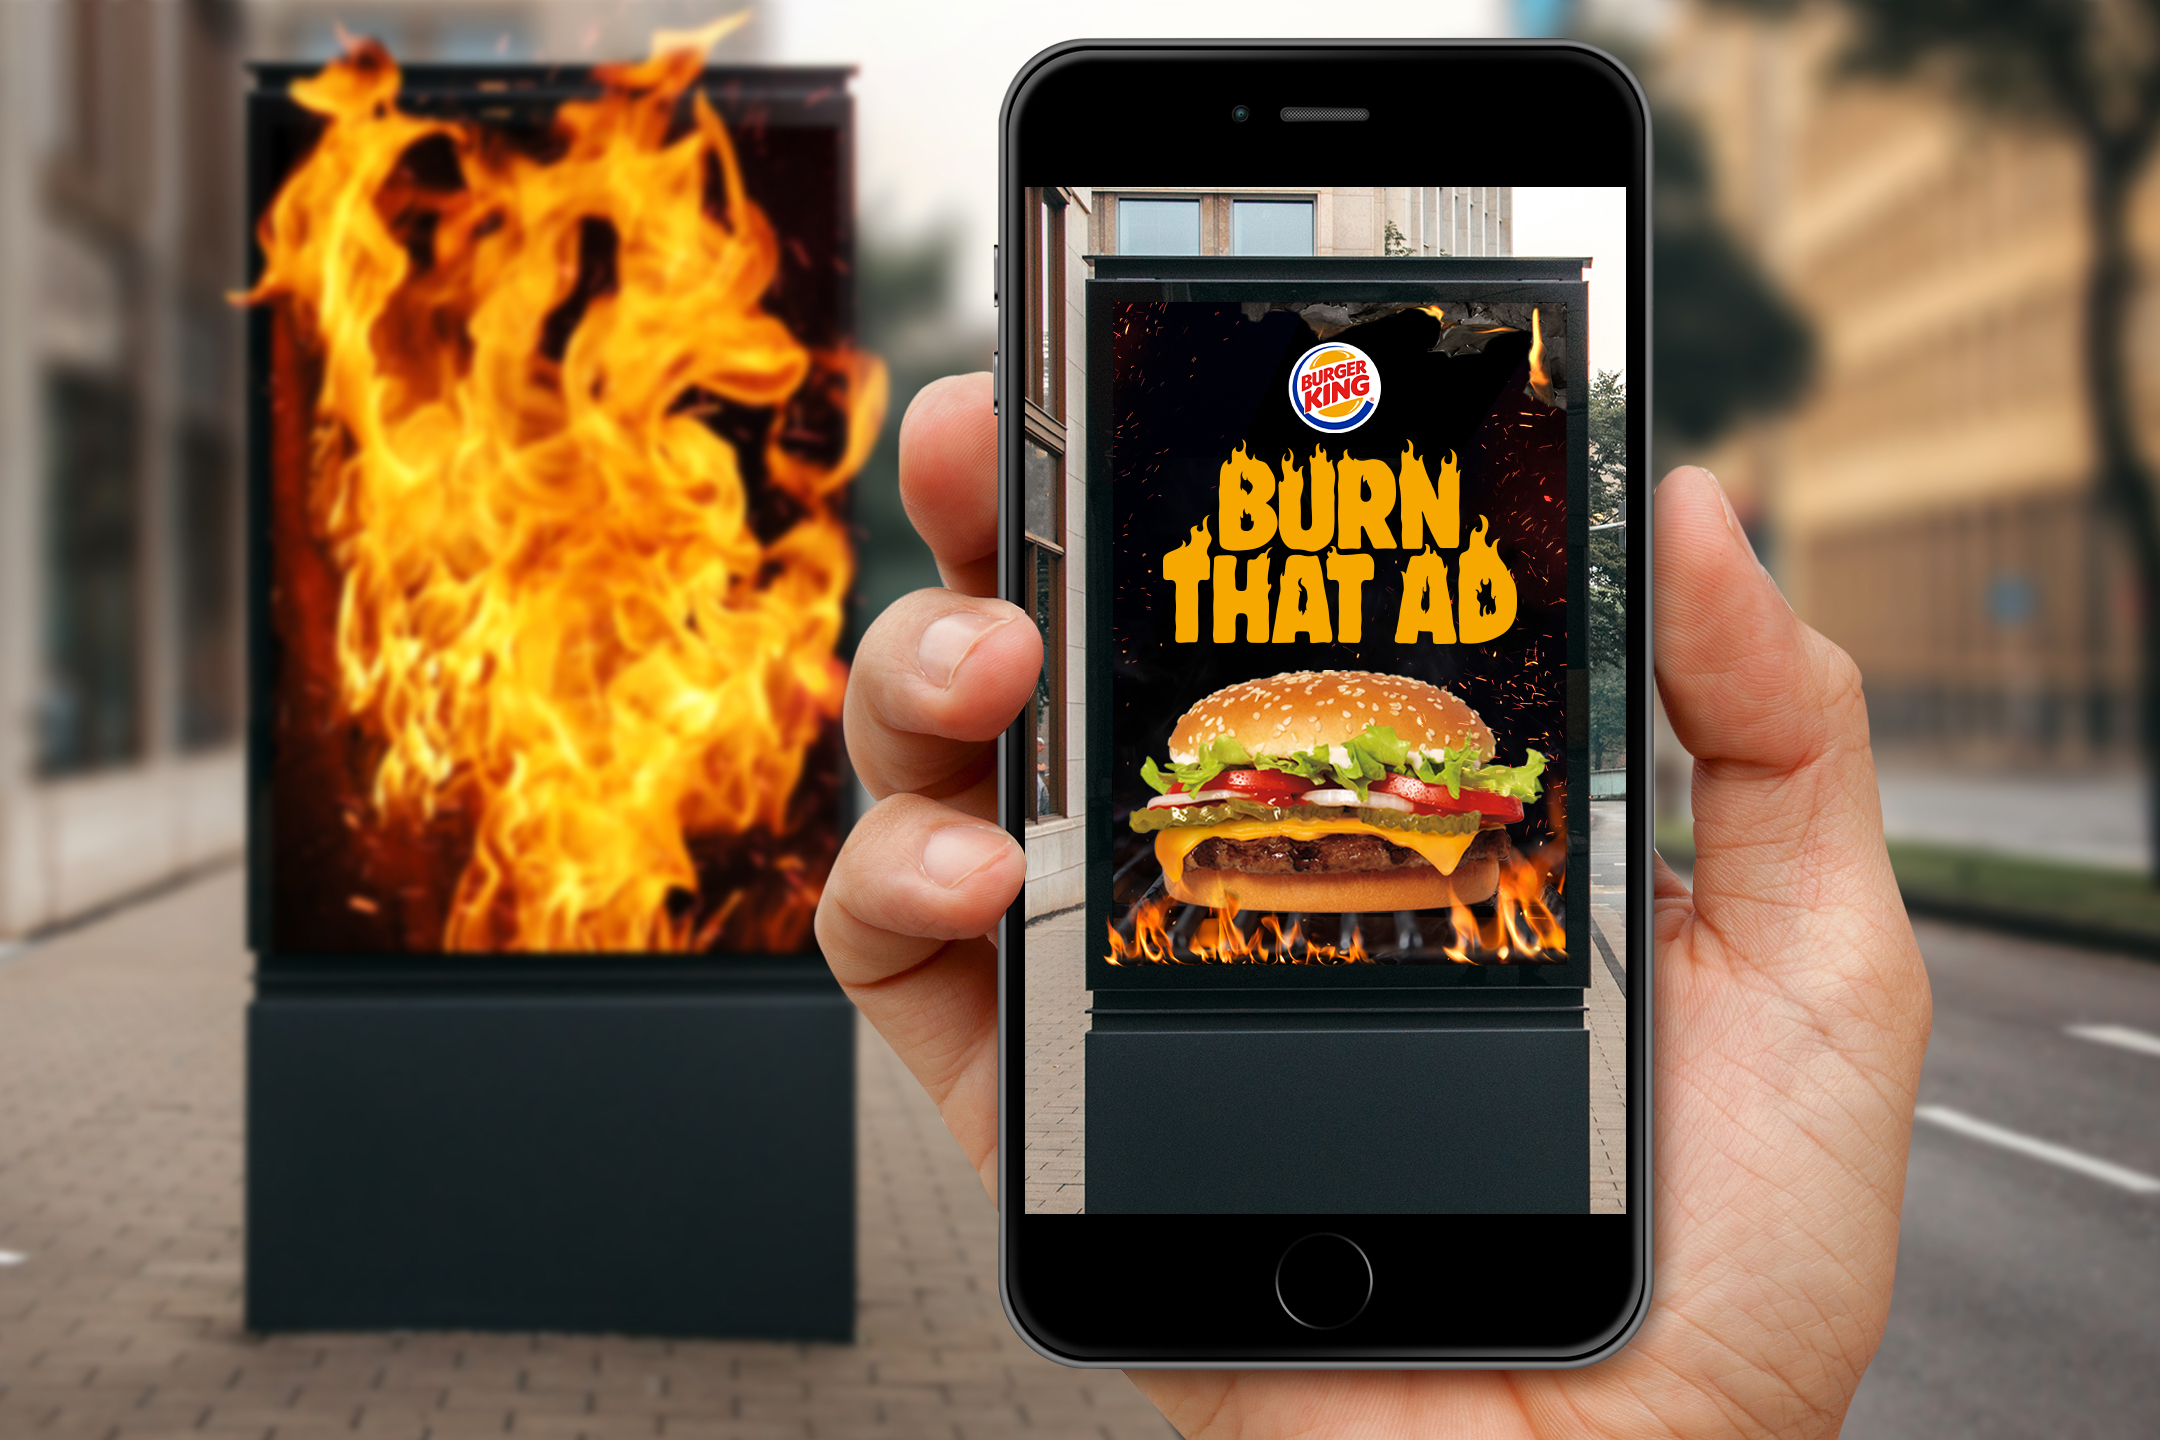 Burger King will give you a free Whopper if you set competitors' ads on 'fire'